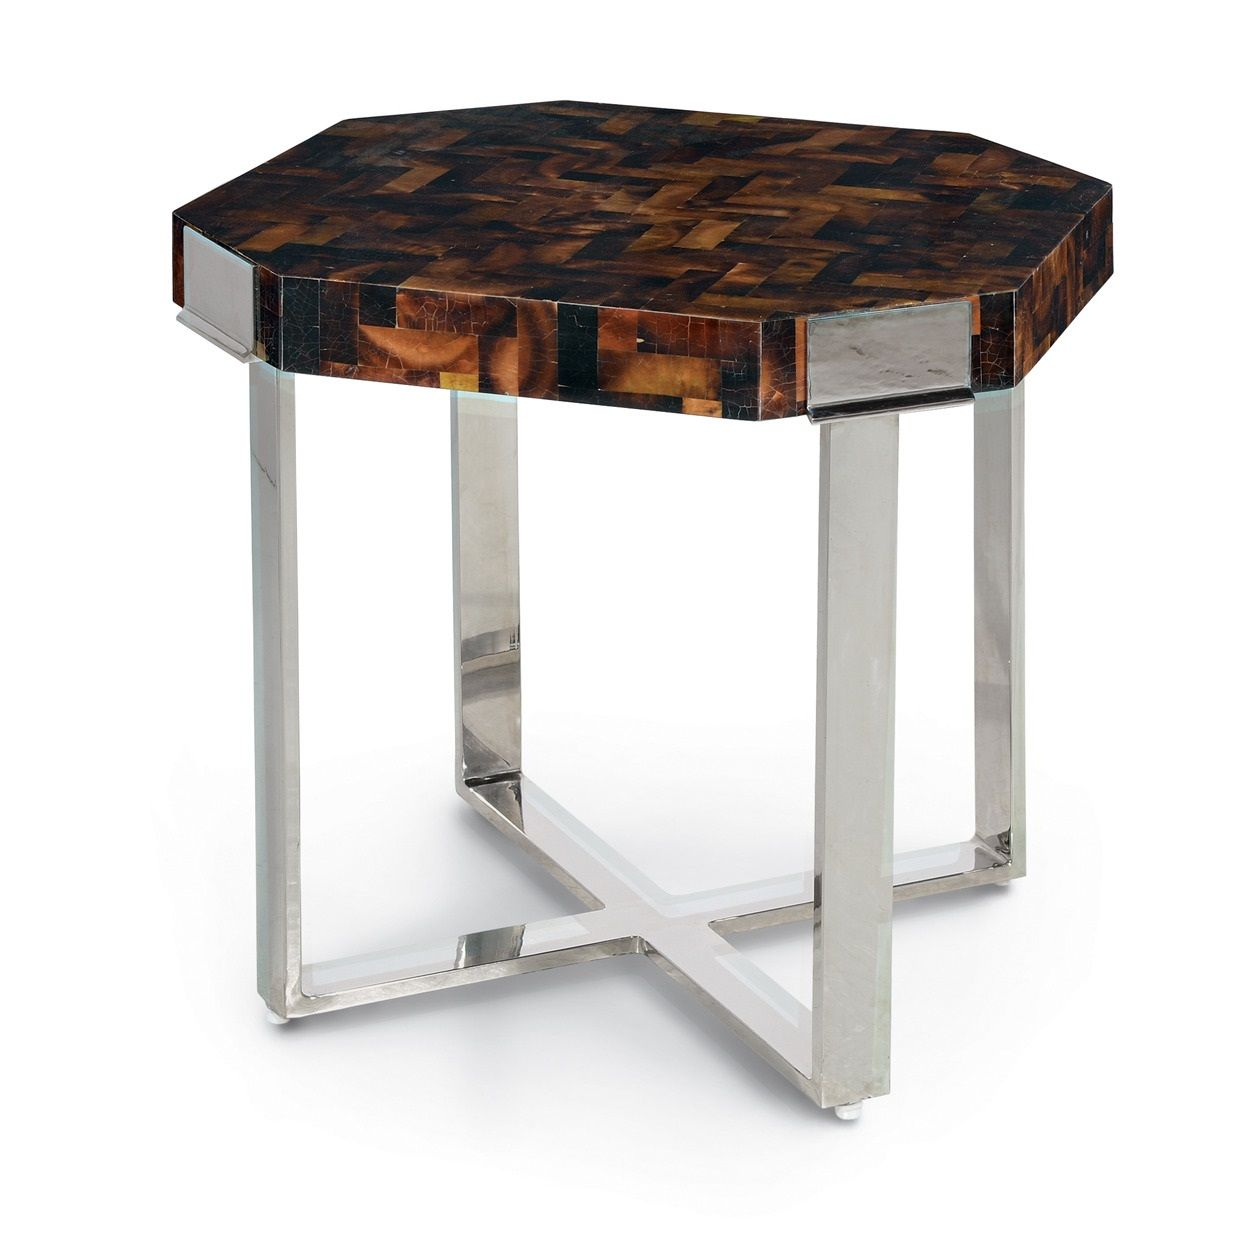 natural elements tall modern polished penshell side table square accent unique limited production item oak end tables with storage ceramic stool white and gold pier lawn furniture